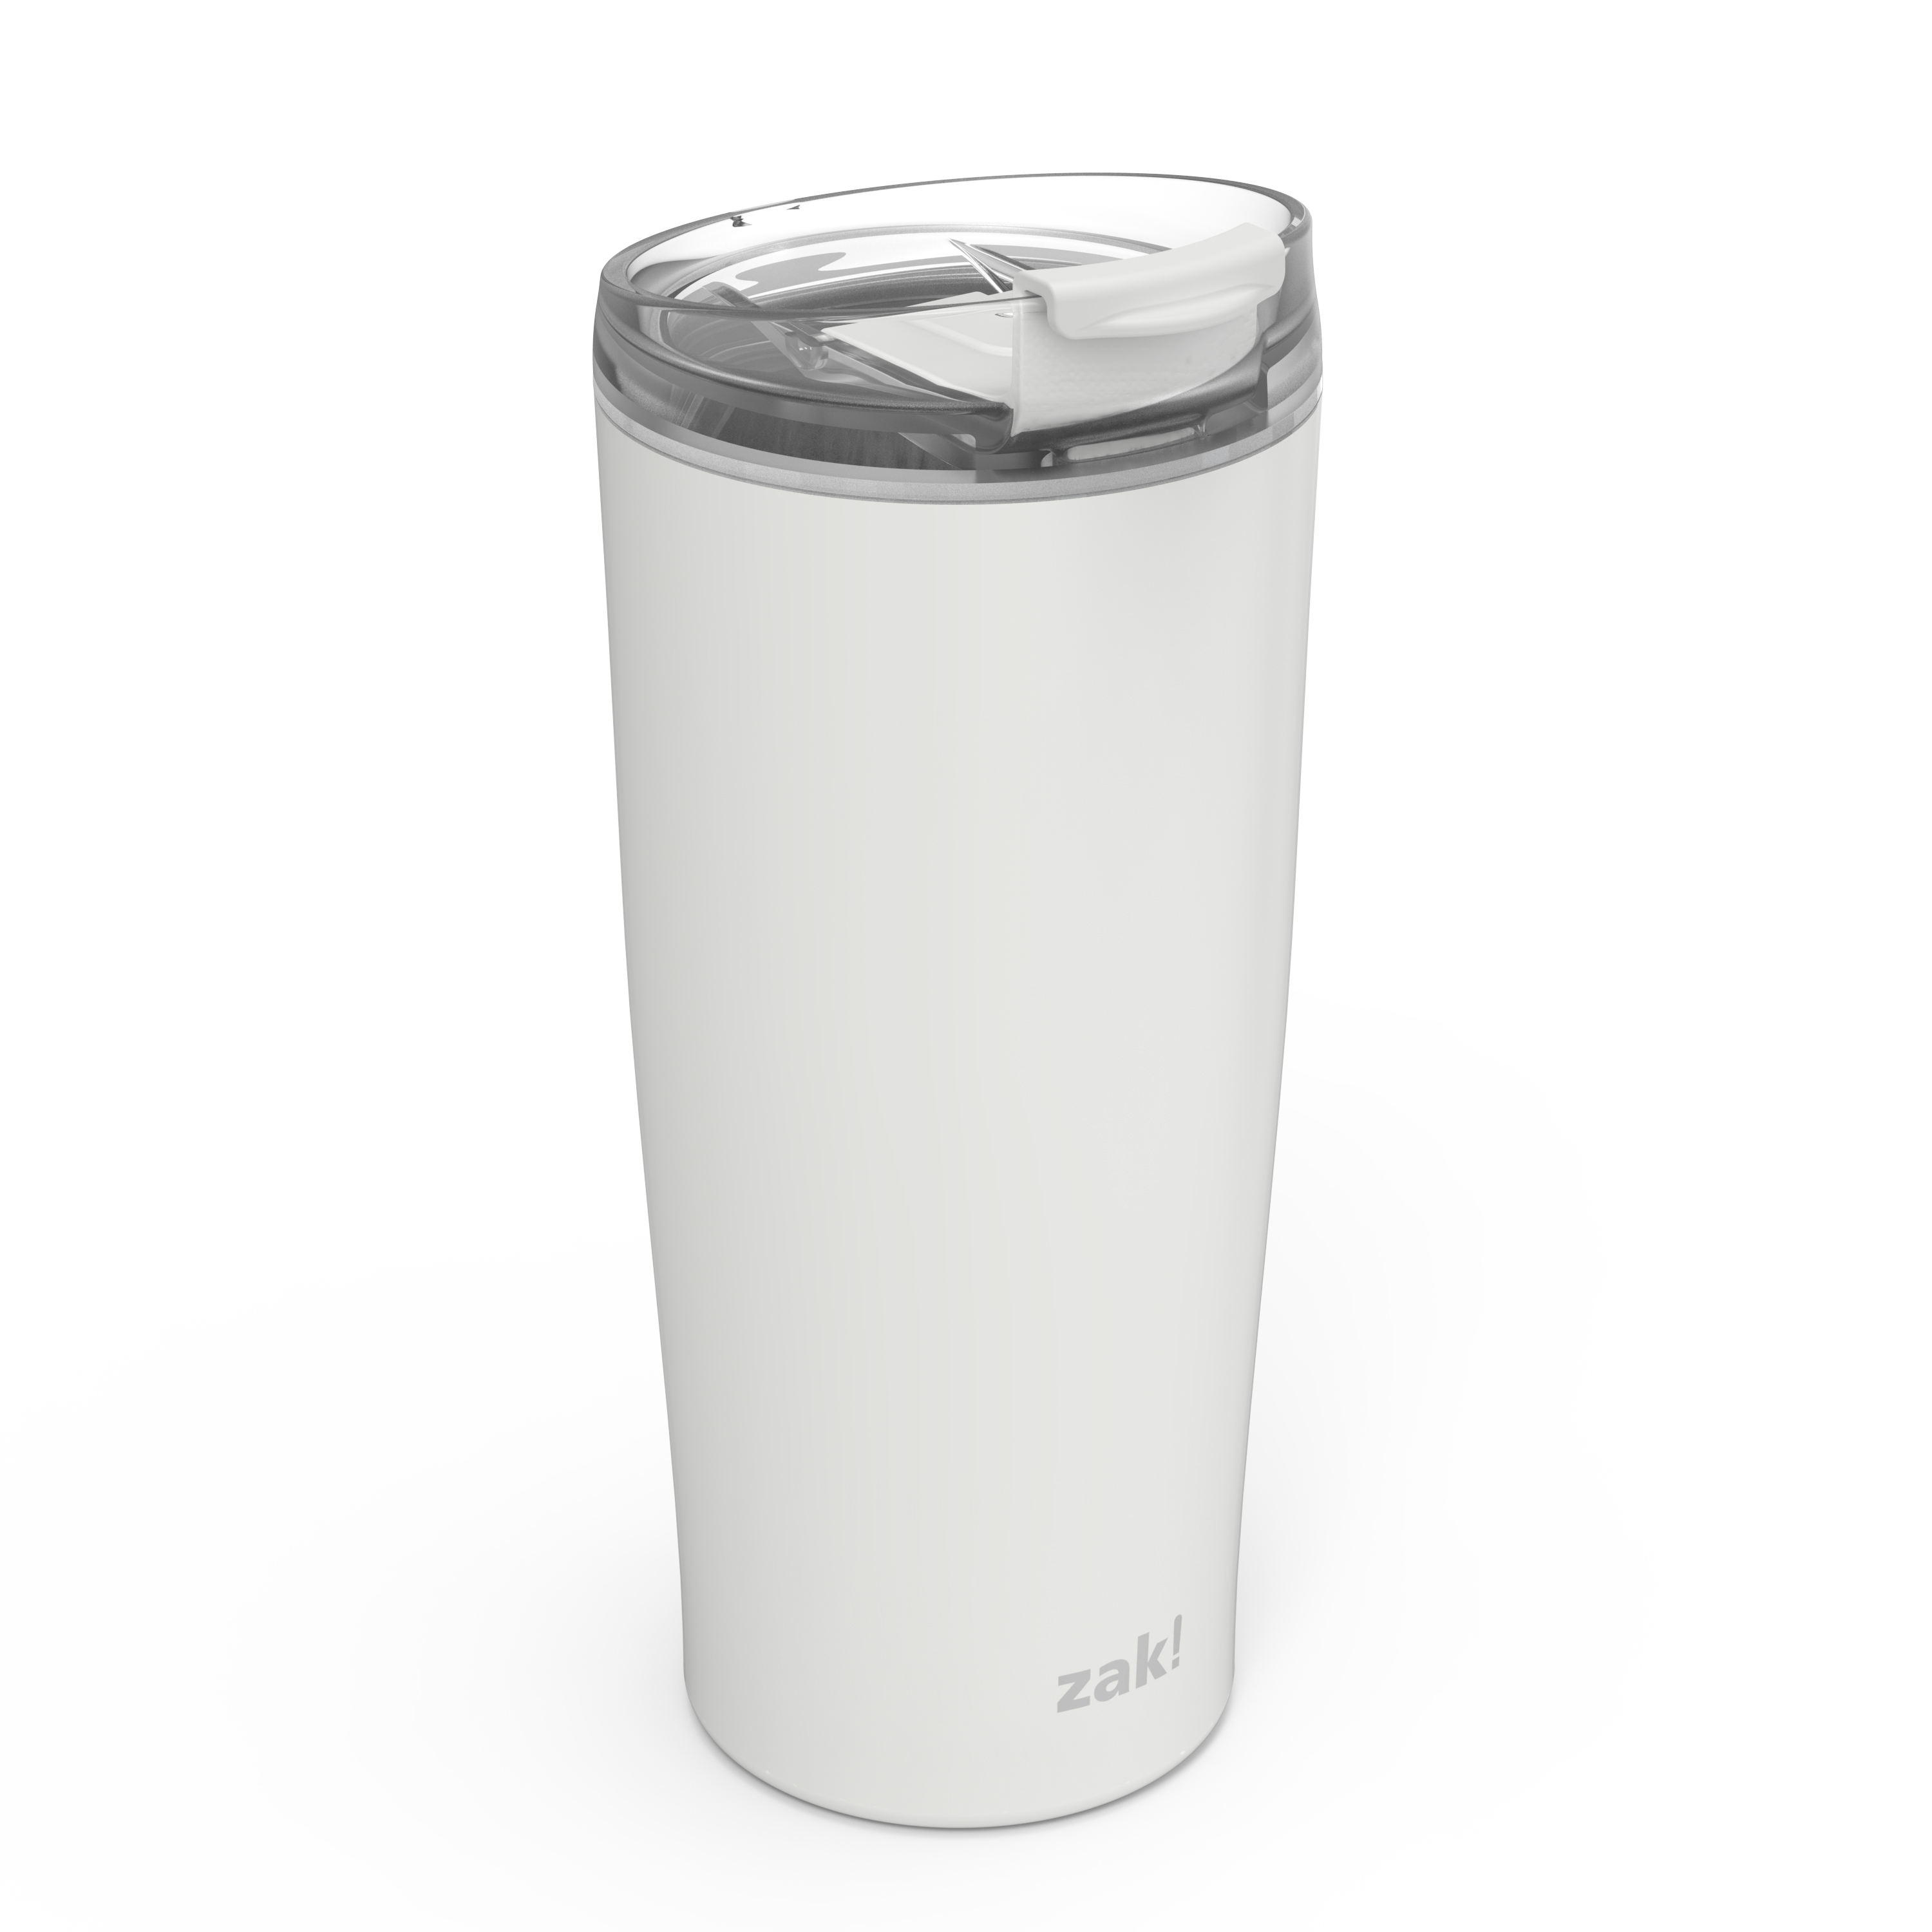 Aberdeen 20 ounce Vacuum Insulated Stainless Steel Tumbler, Gray slideshow image 4